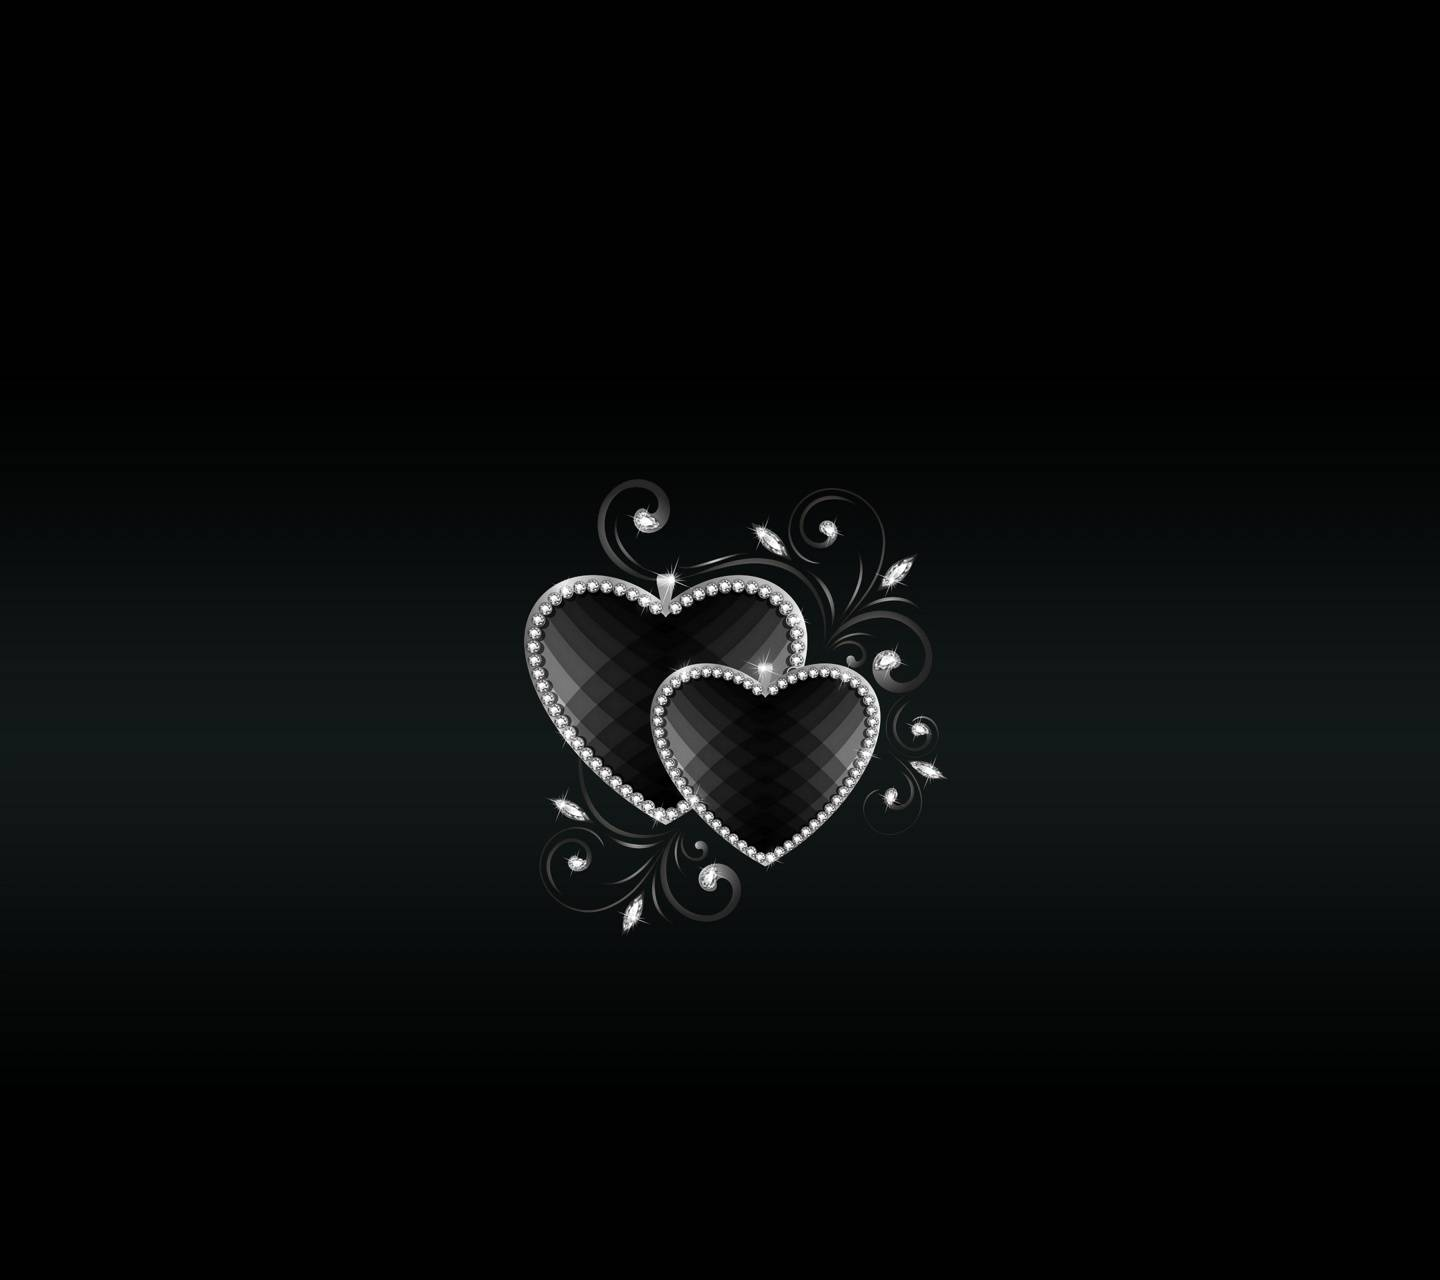 Black Heart Wallpaper By Julianna 38 Free On Zedge